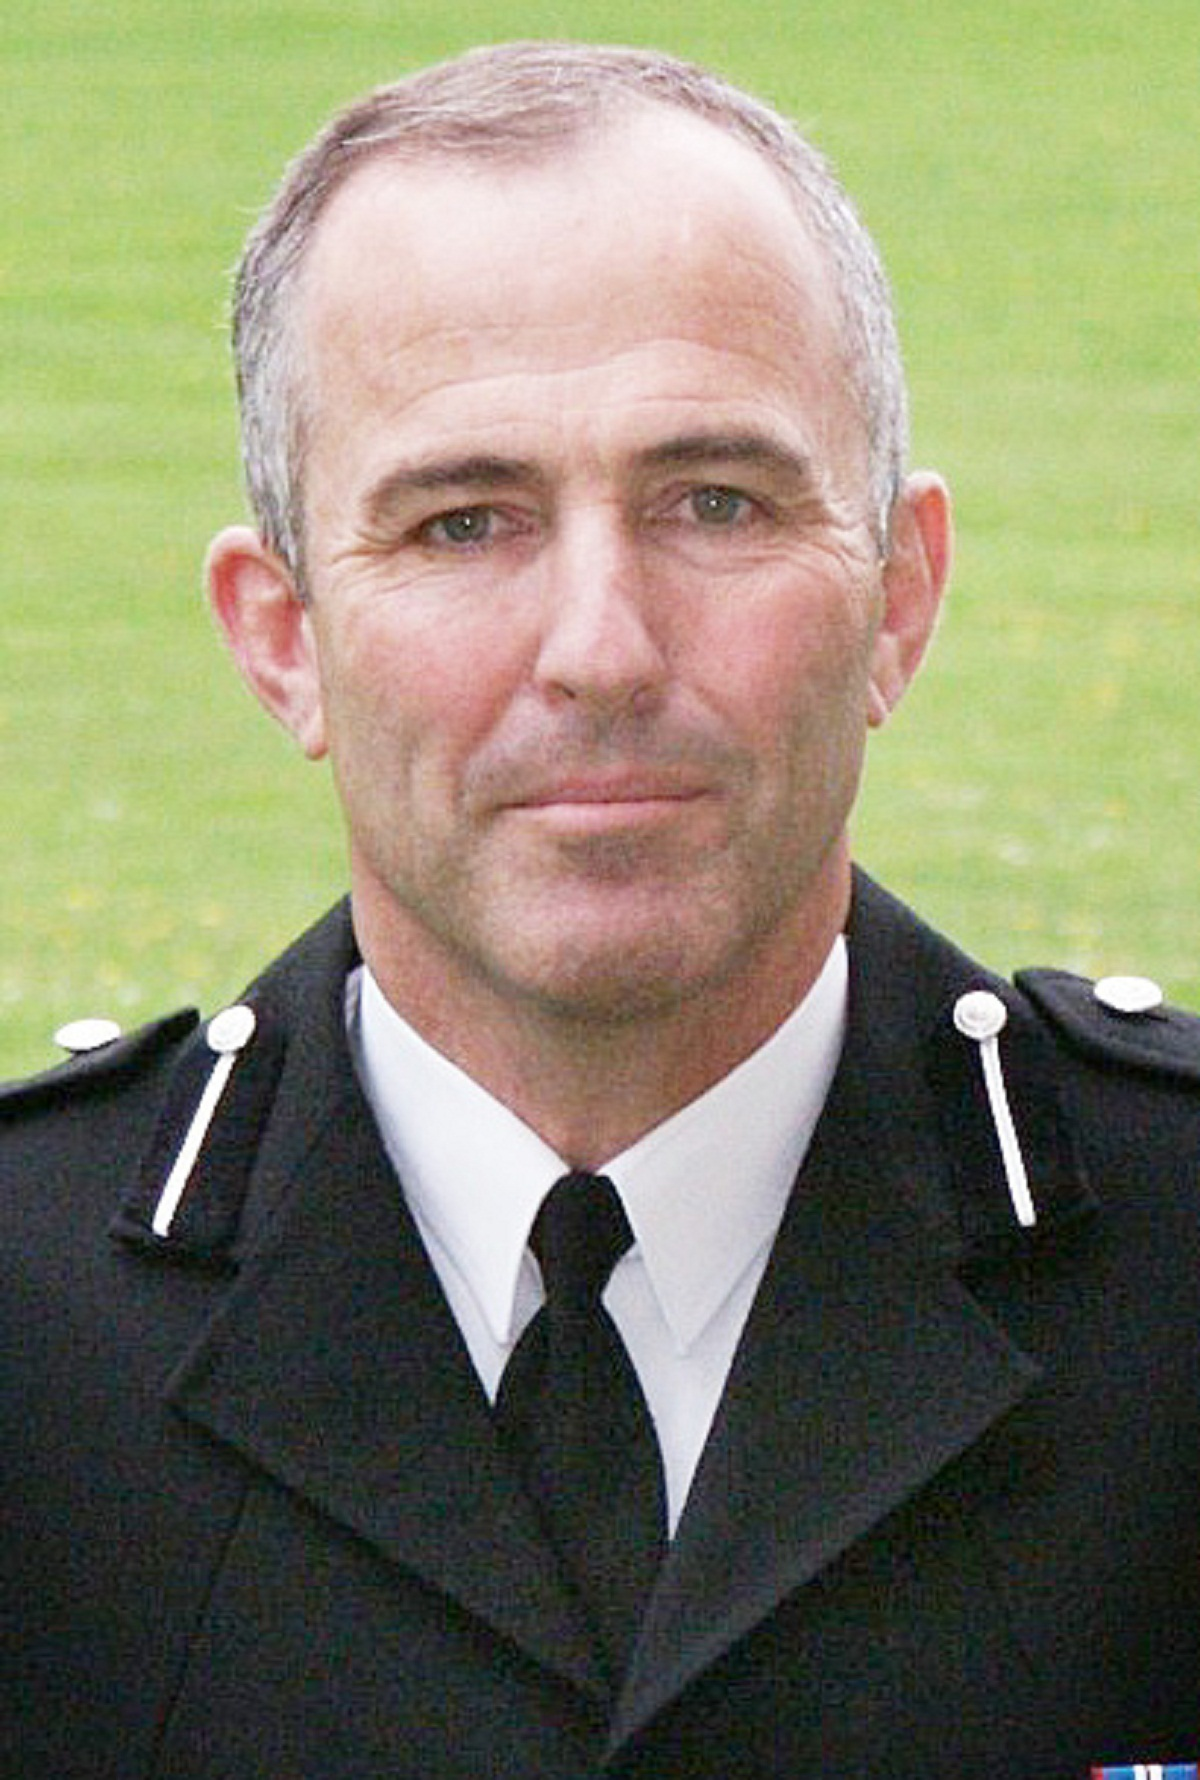 Taking steps to deal with issues: Deputy Chief Constable Tim Madgwick